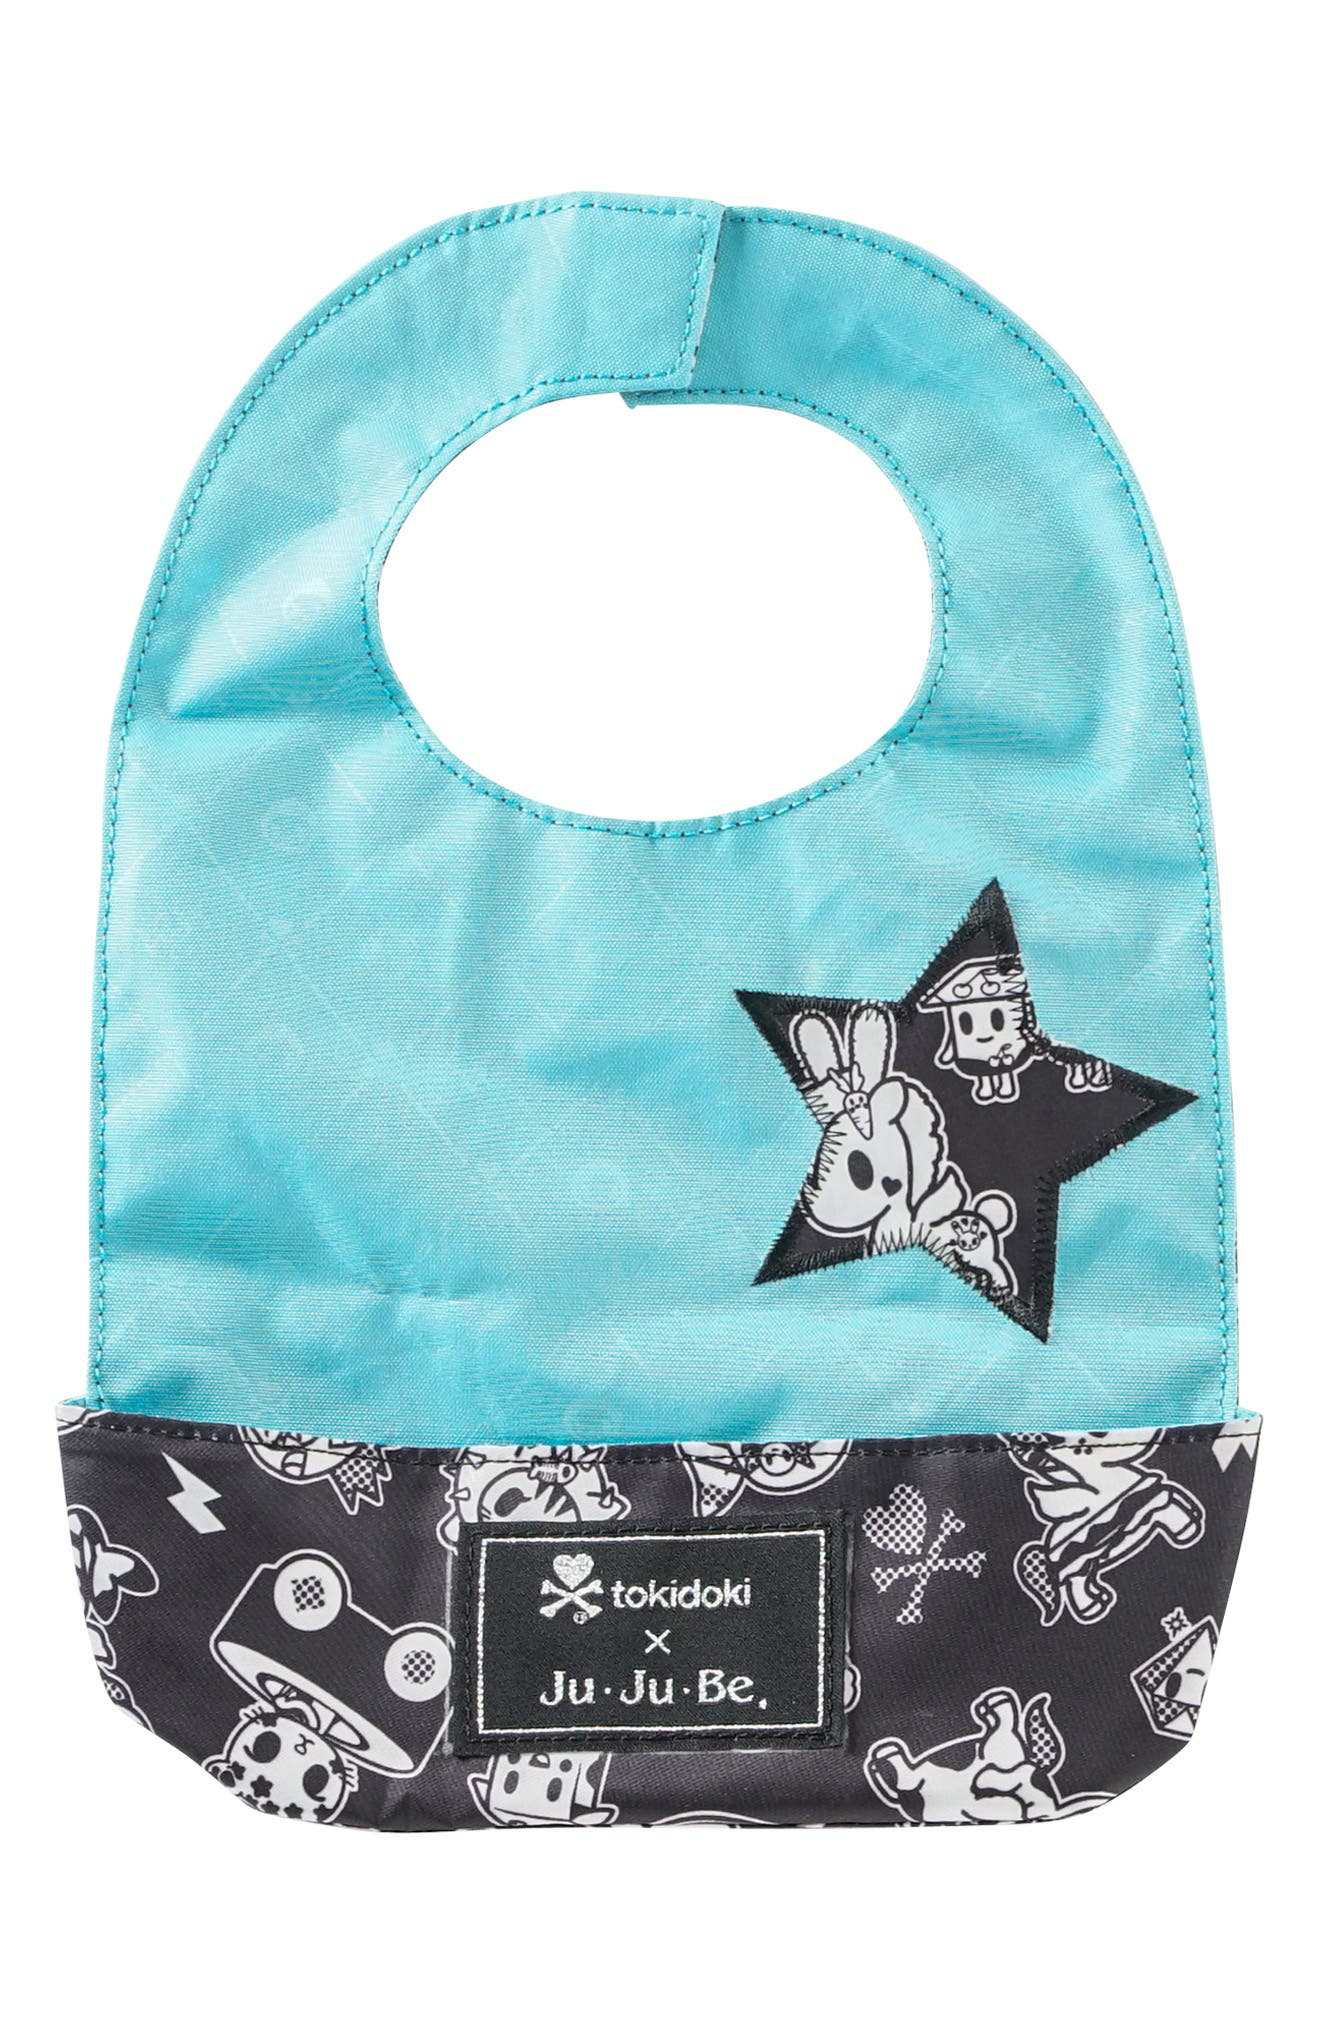 tokidoki x Ju-Ju-Be 'Be Neat' Reversible Bib,                             Main thumbnail 1, color,                             009